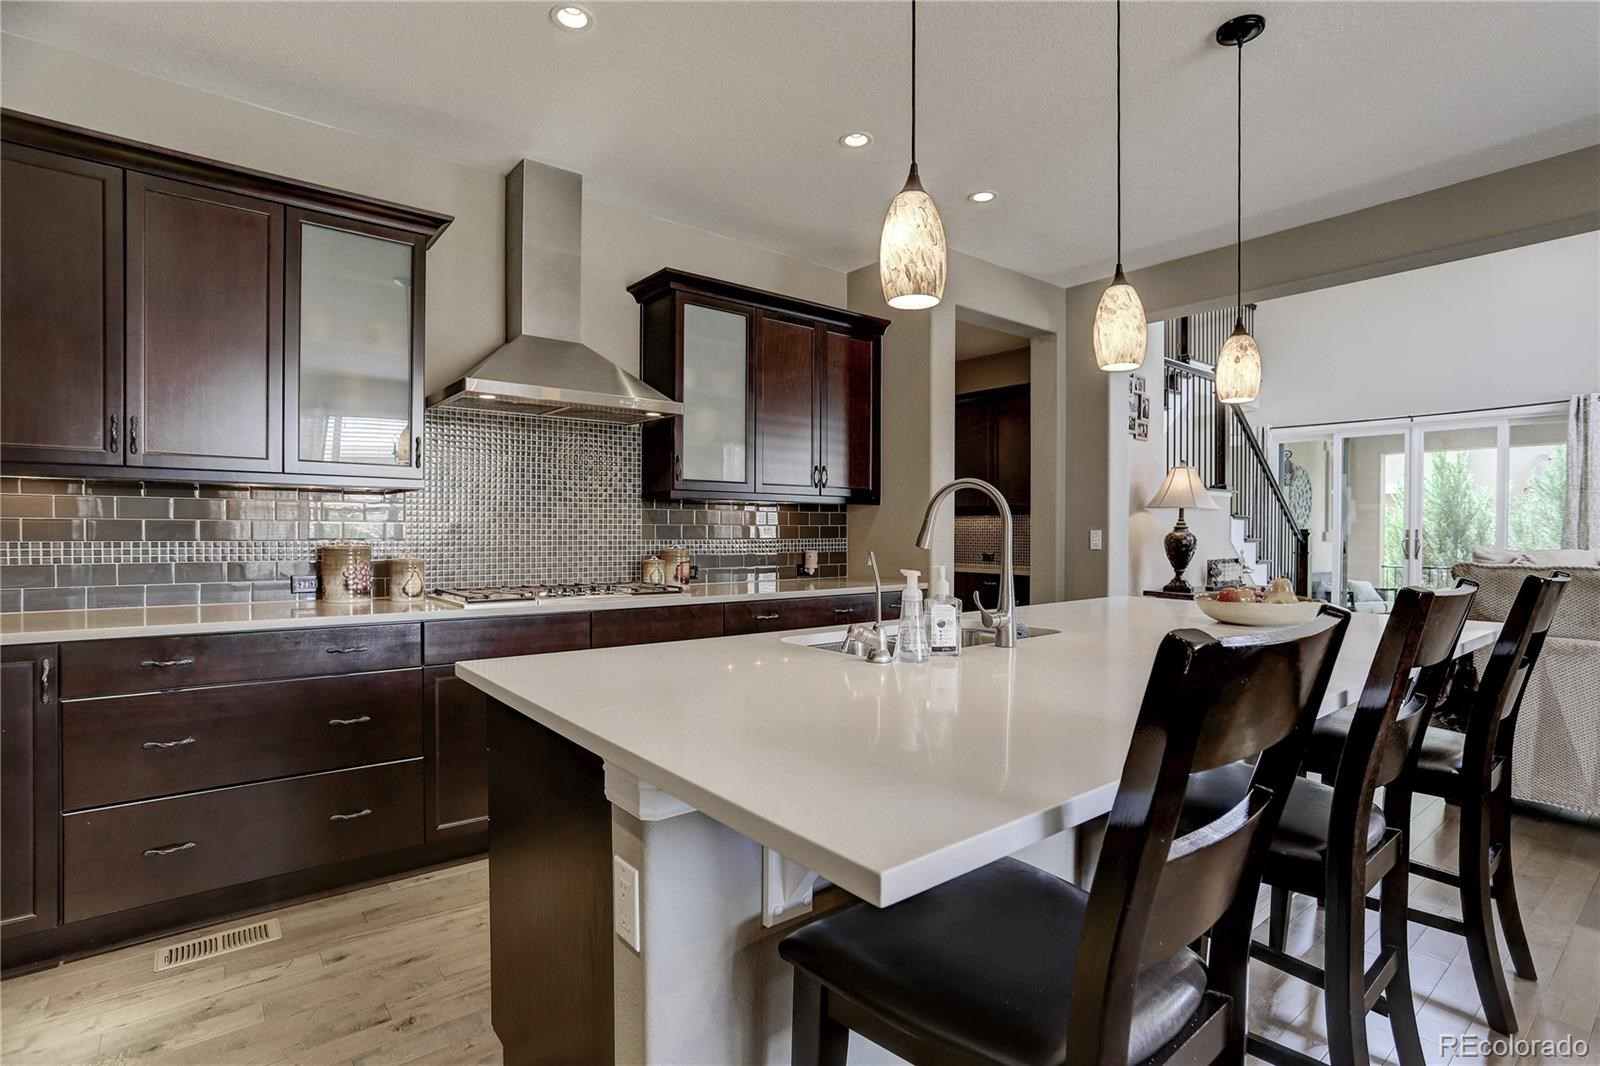 MLS# 8360577 - 9 - 2247 S Isabell Court, Lakewood, CO 80228